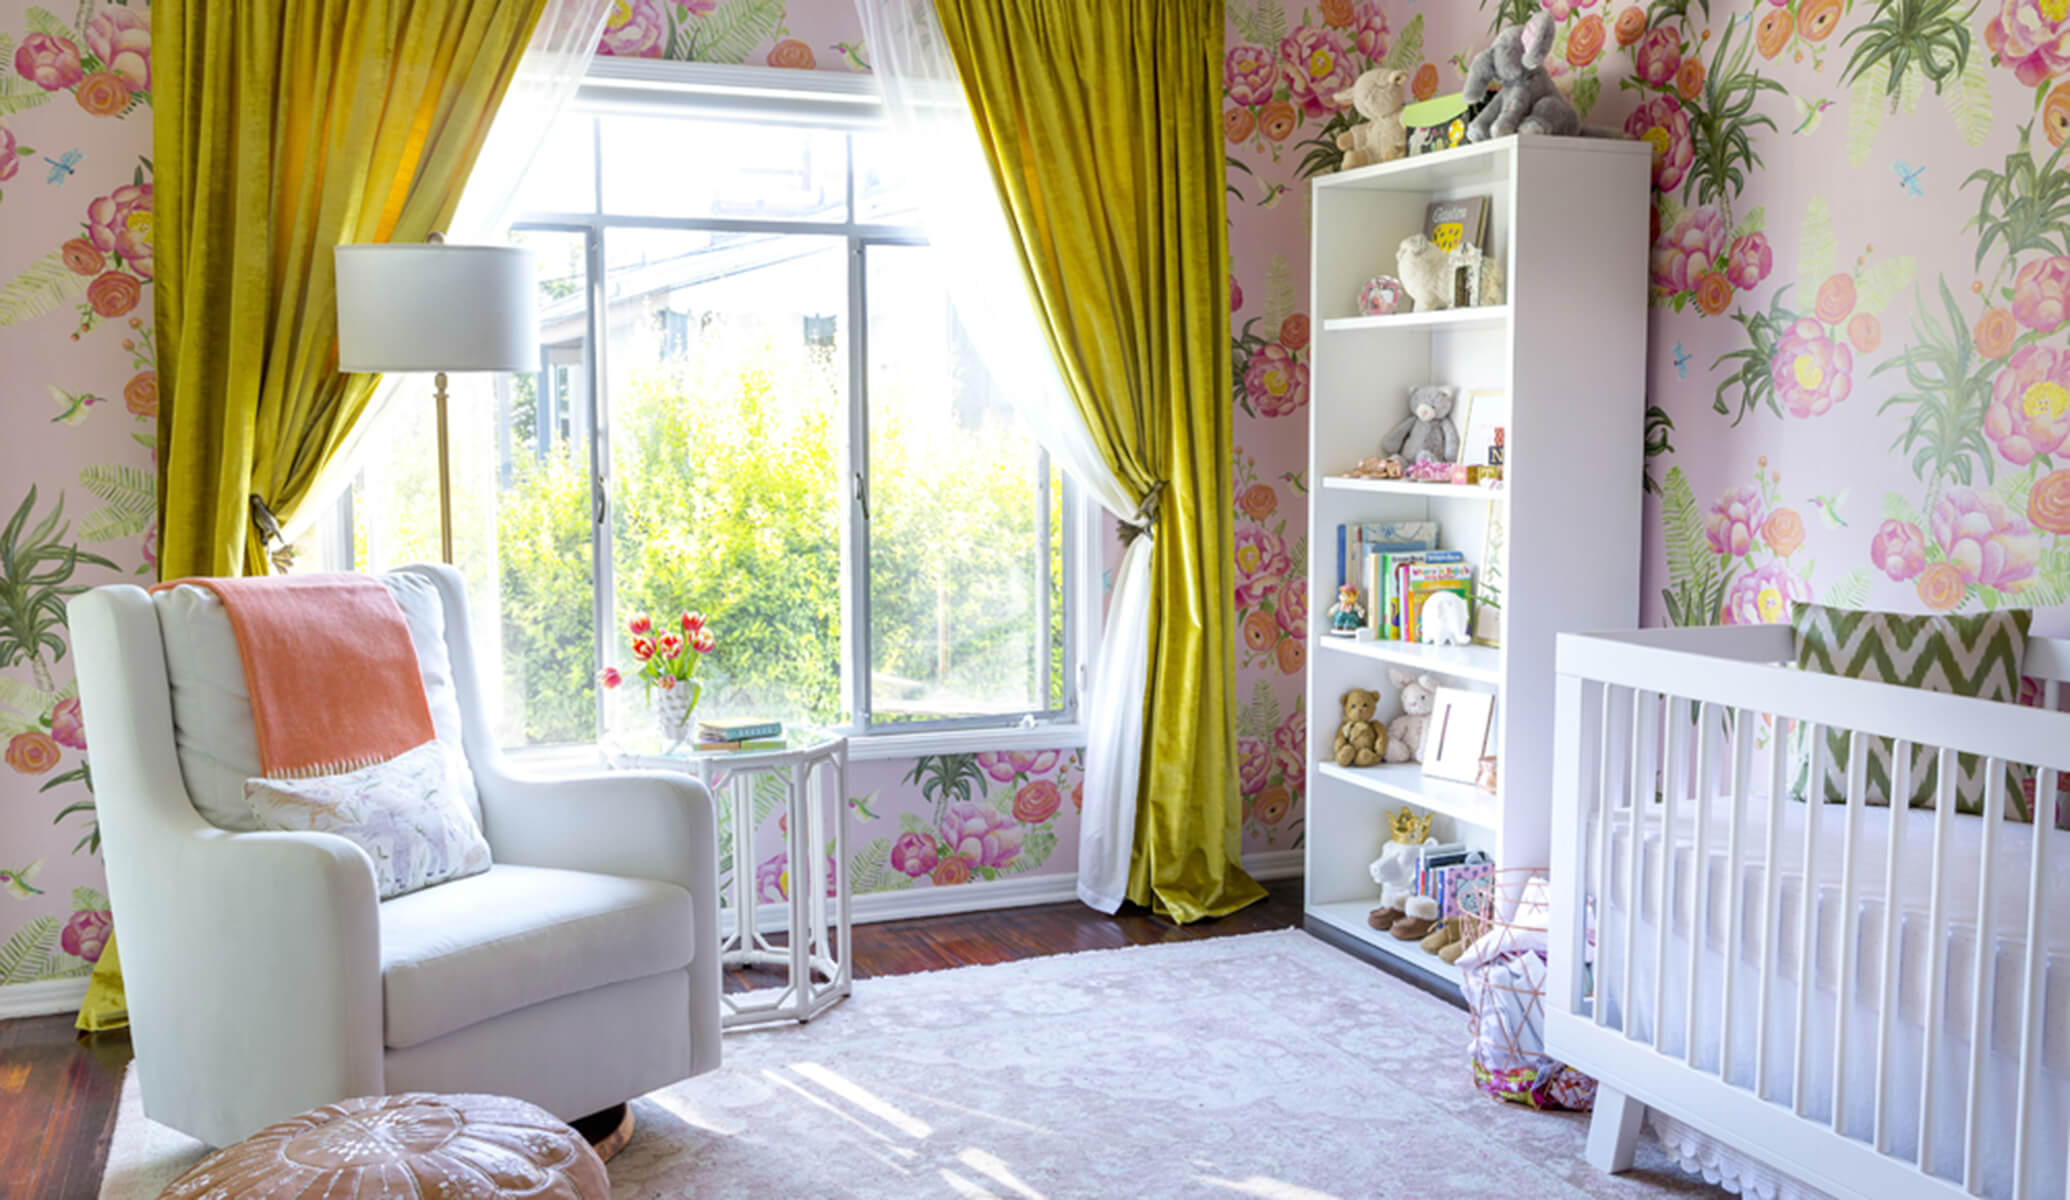 GINNY_MACDONALD_HOLLYWOOD_NURSERY 2